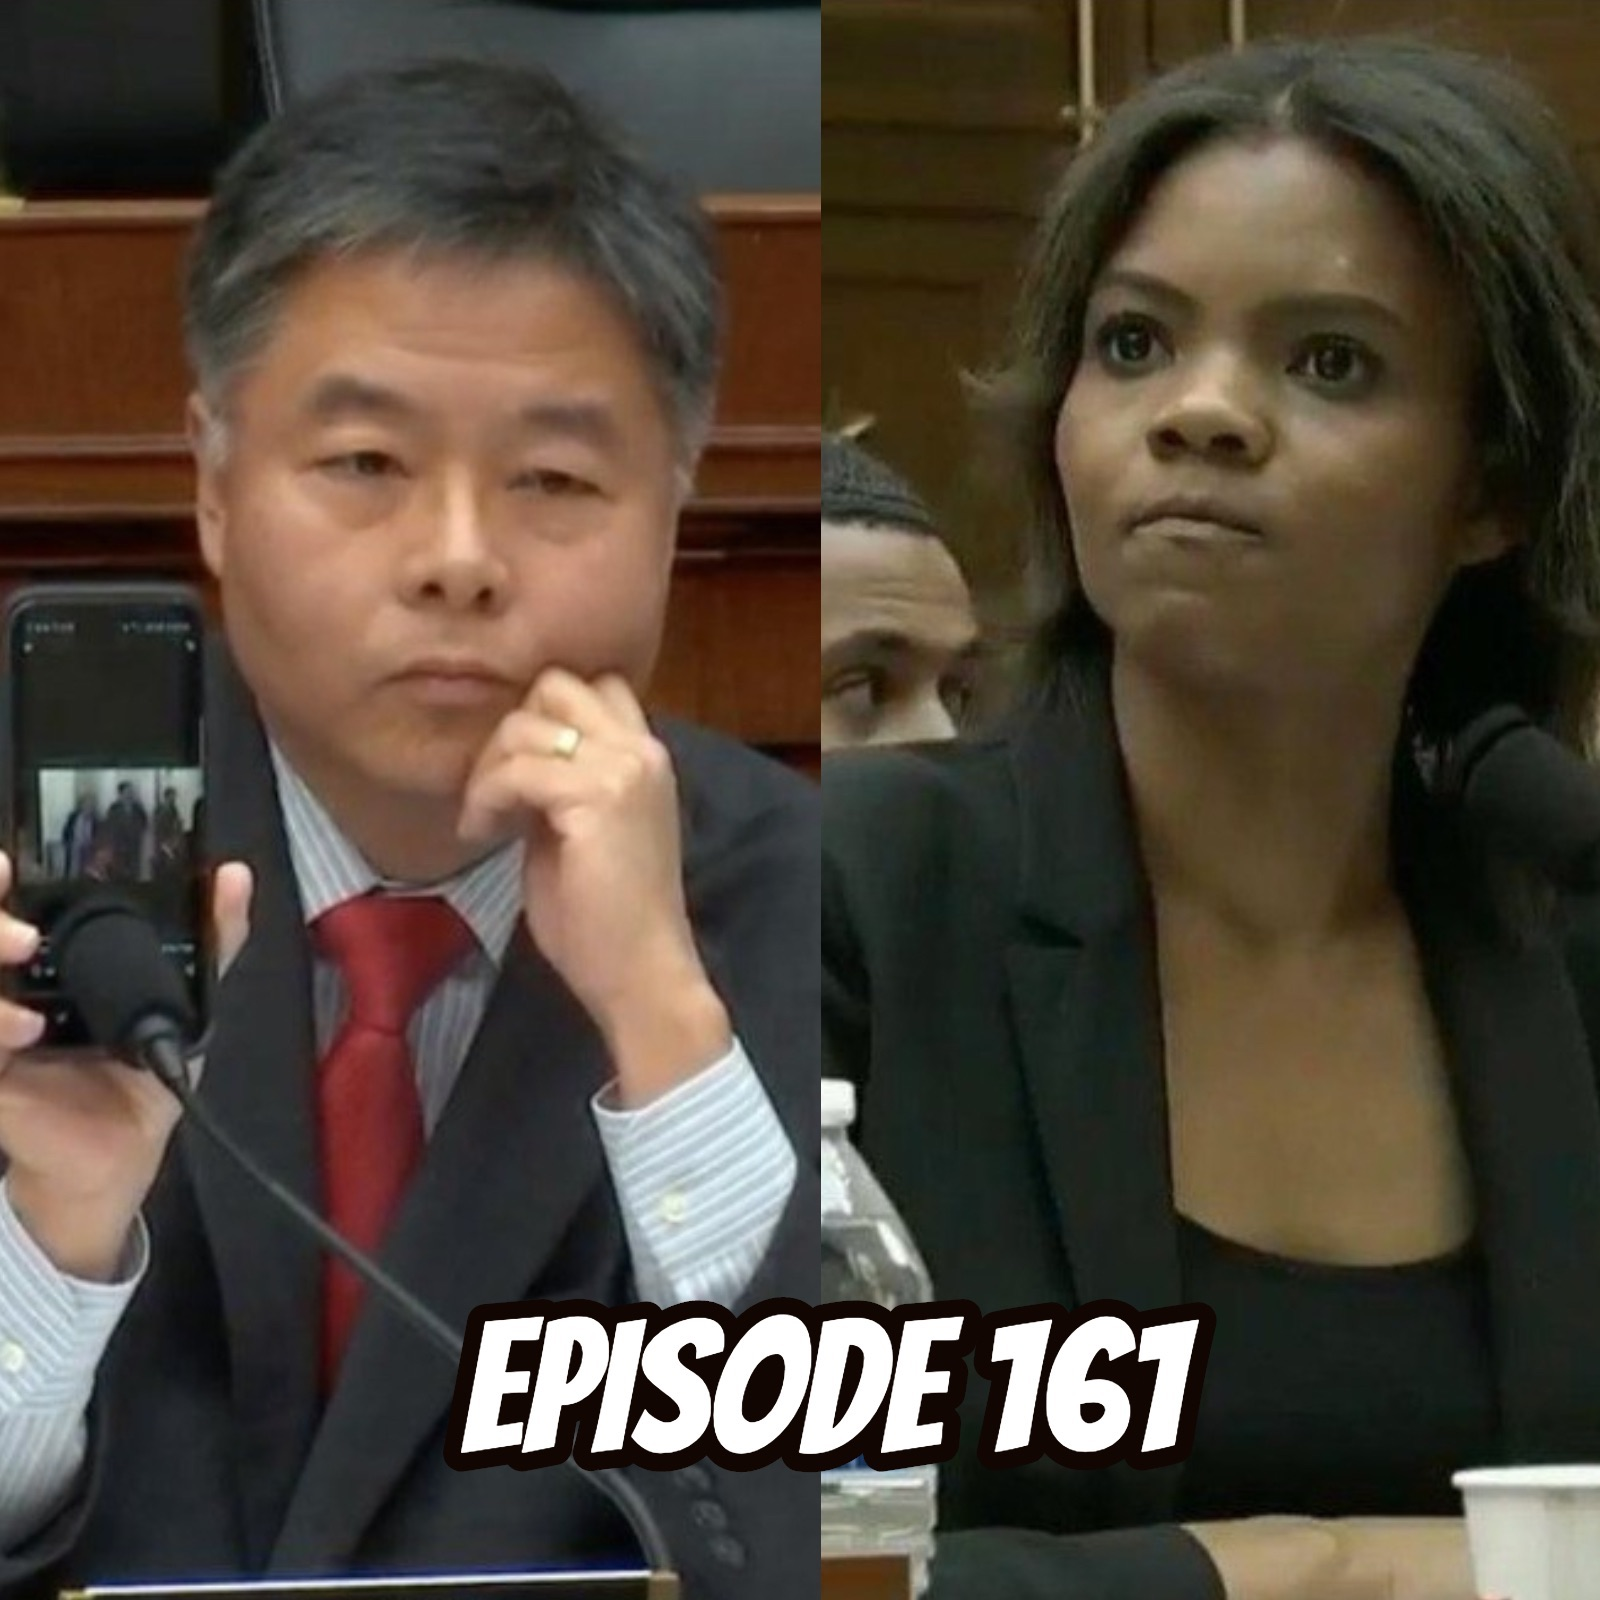 Look Forward - Ep161: Getting Lieu'd with Susie Split Ends